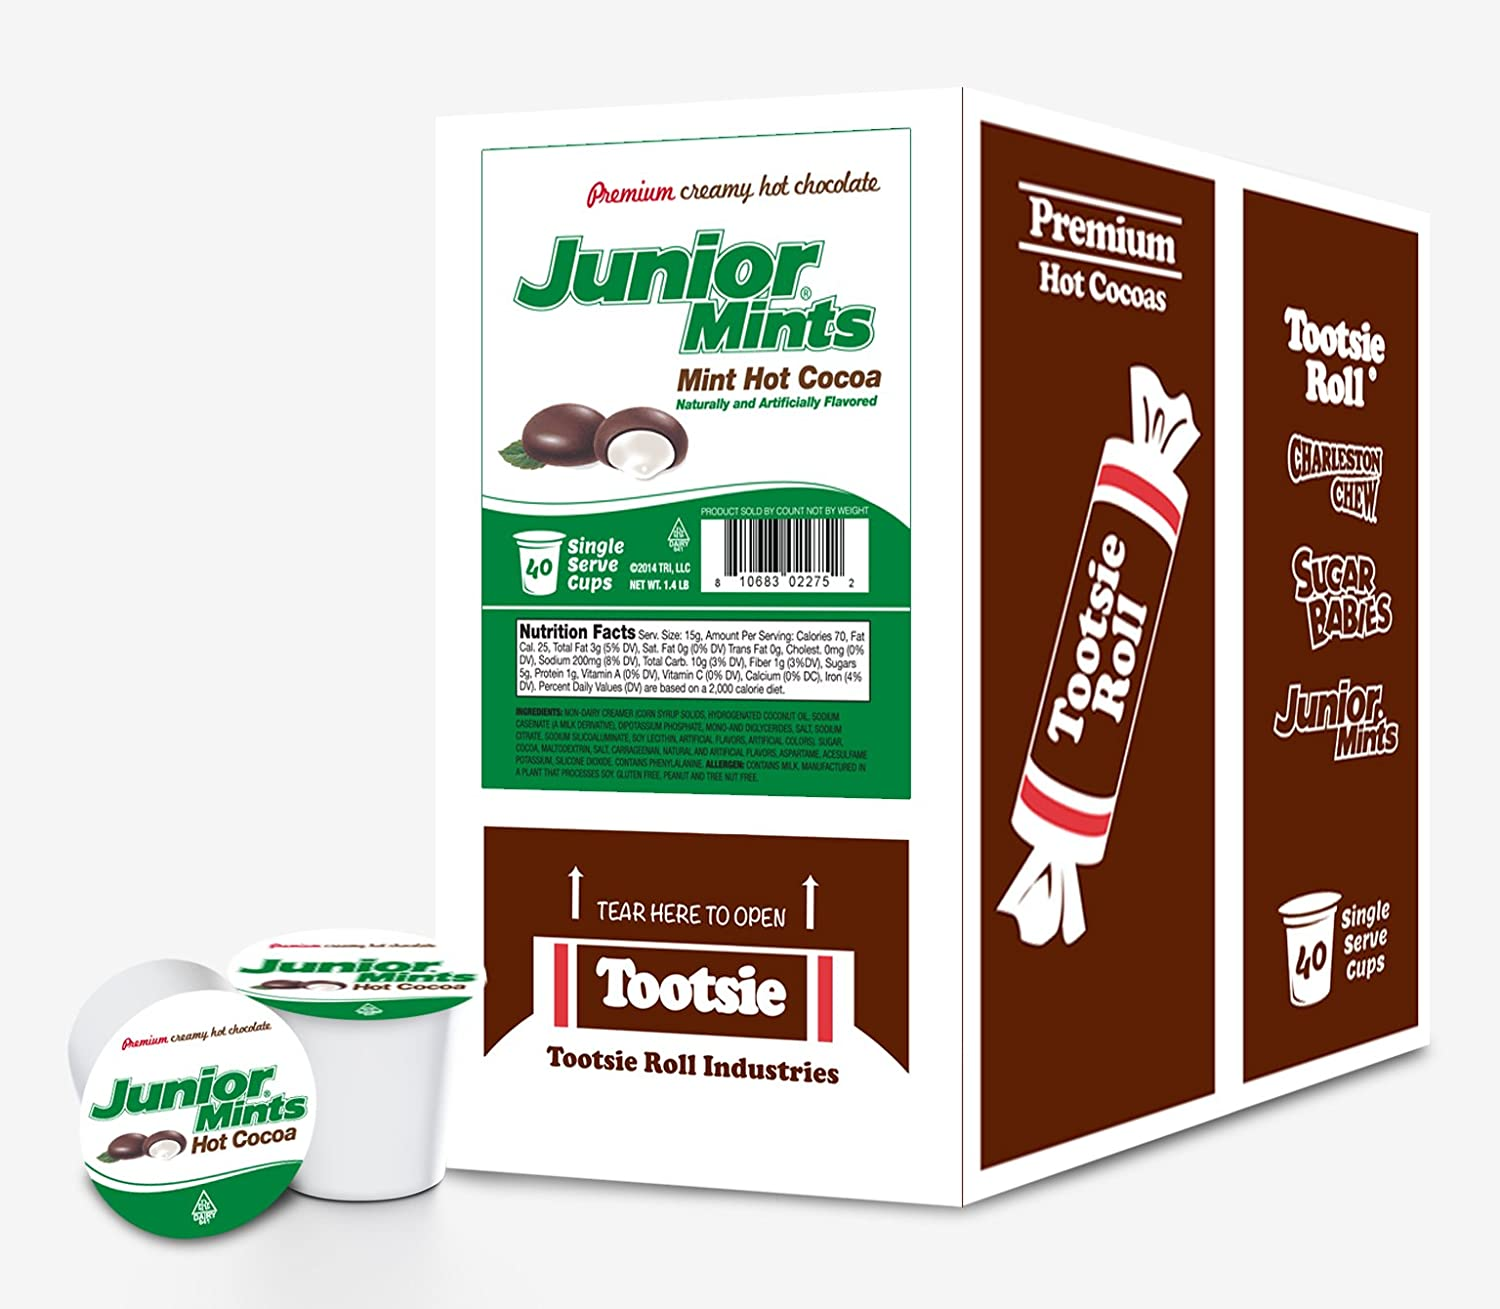 Junior Mint Hot Cocoa for Keurig K-Cup Brewers, 40 Count: Amazon ...